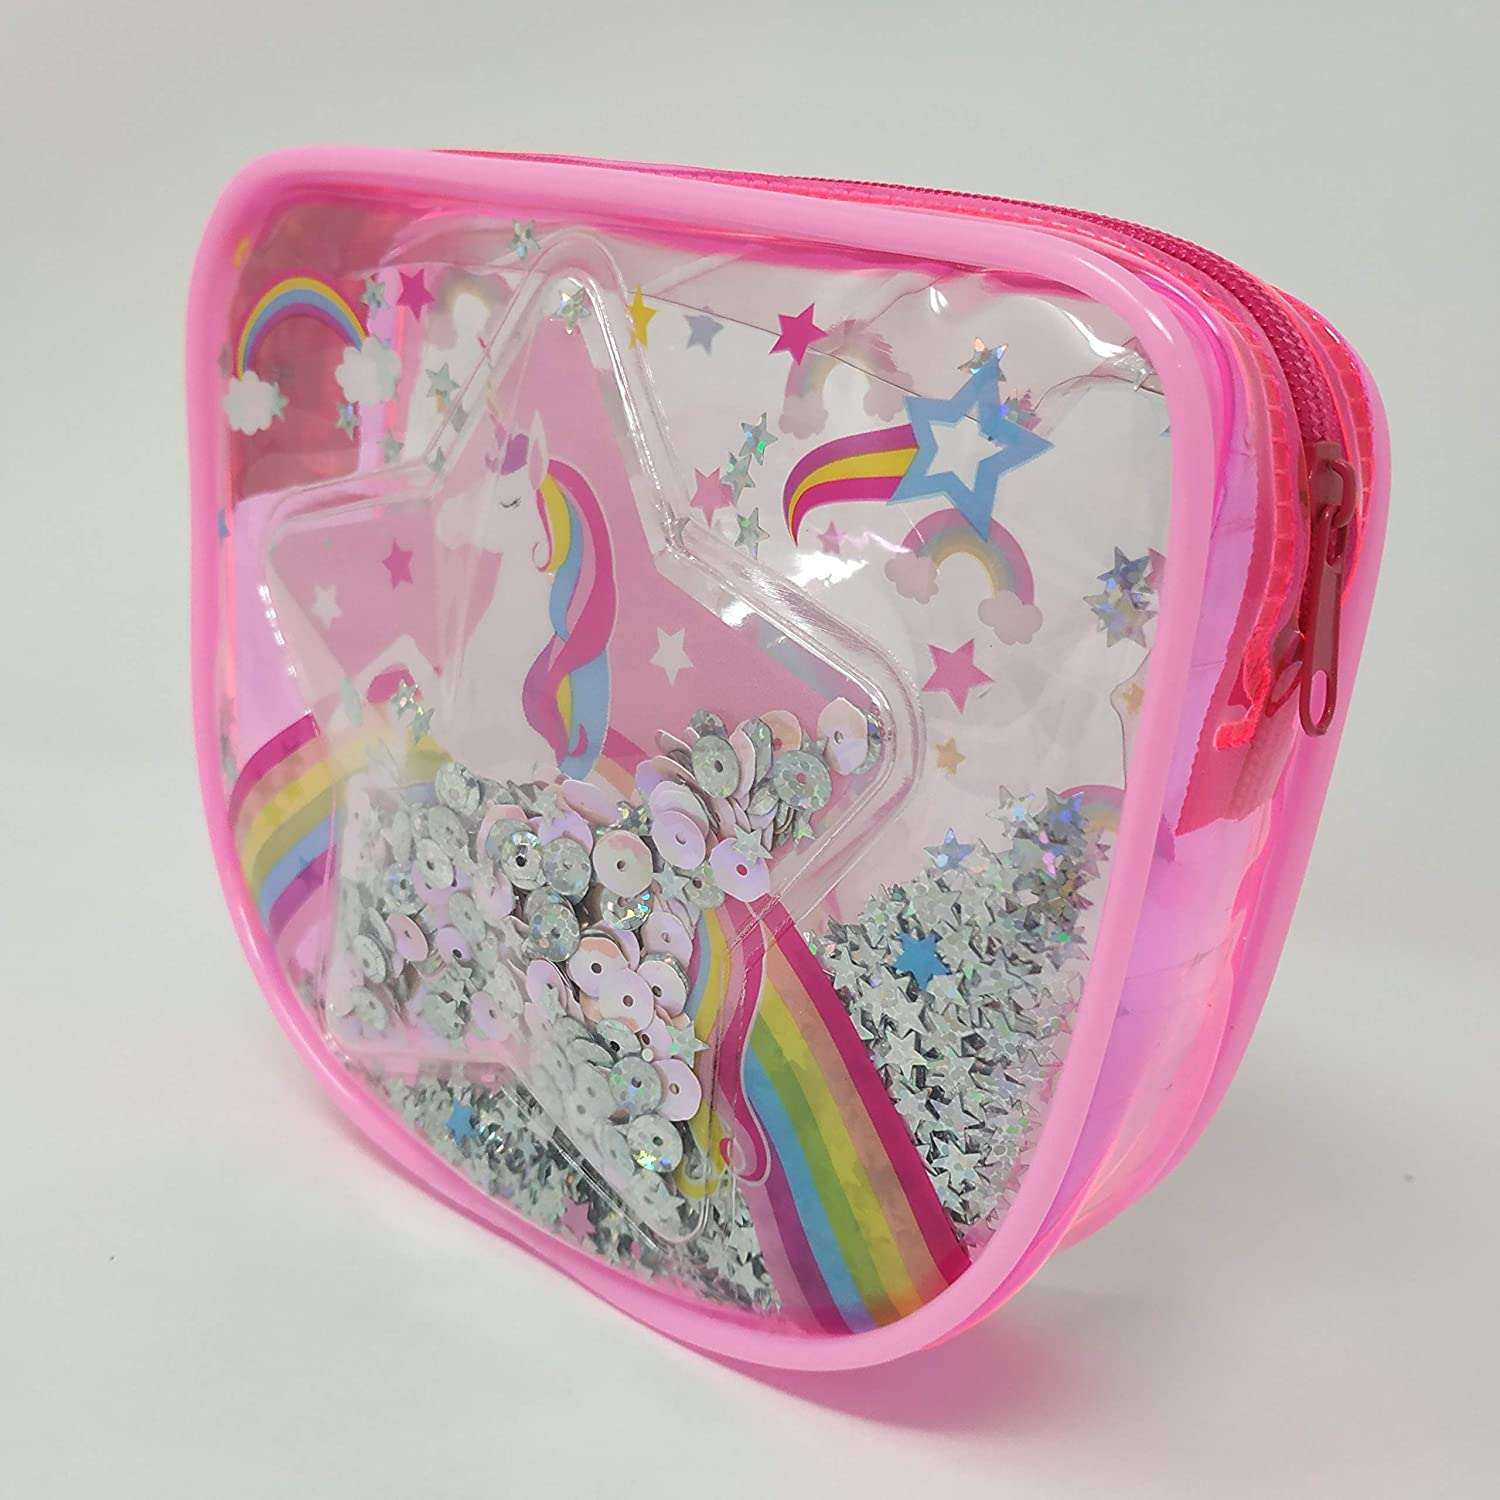 Hot Focus Pretty Lips Beauty Kit, Unicorn. 1 Clear Confetti Cosmetic Bag, 1 Eyeshadow Palette, 1 Lip Balm, 1 Lip Gloss. Complete Makeup Kit for Kids/Girls/Teens. Perfect for Any Occasion.